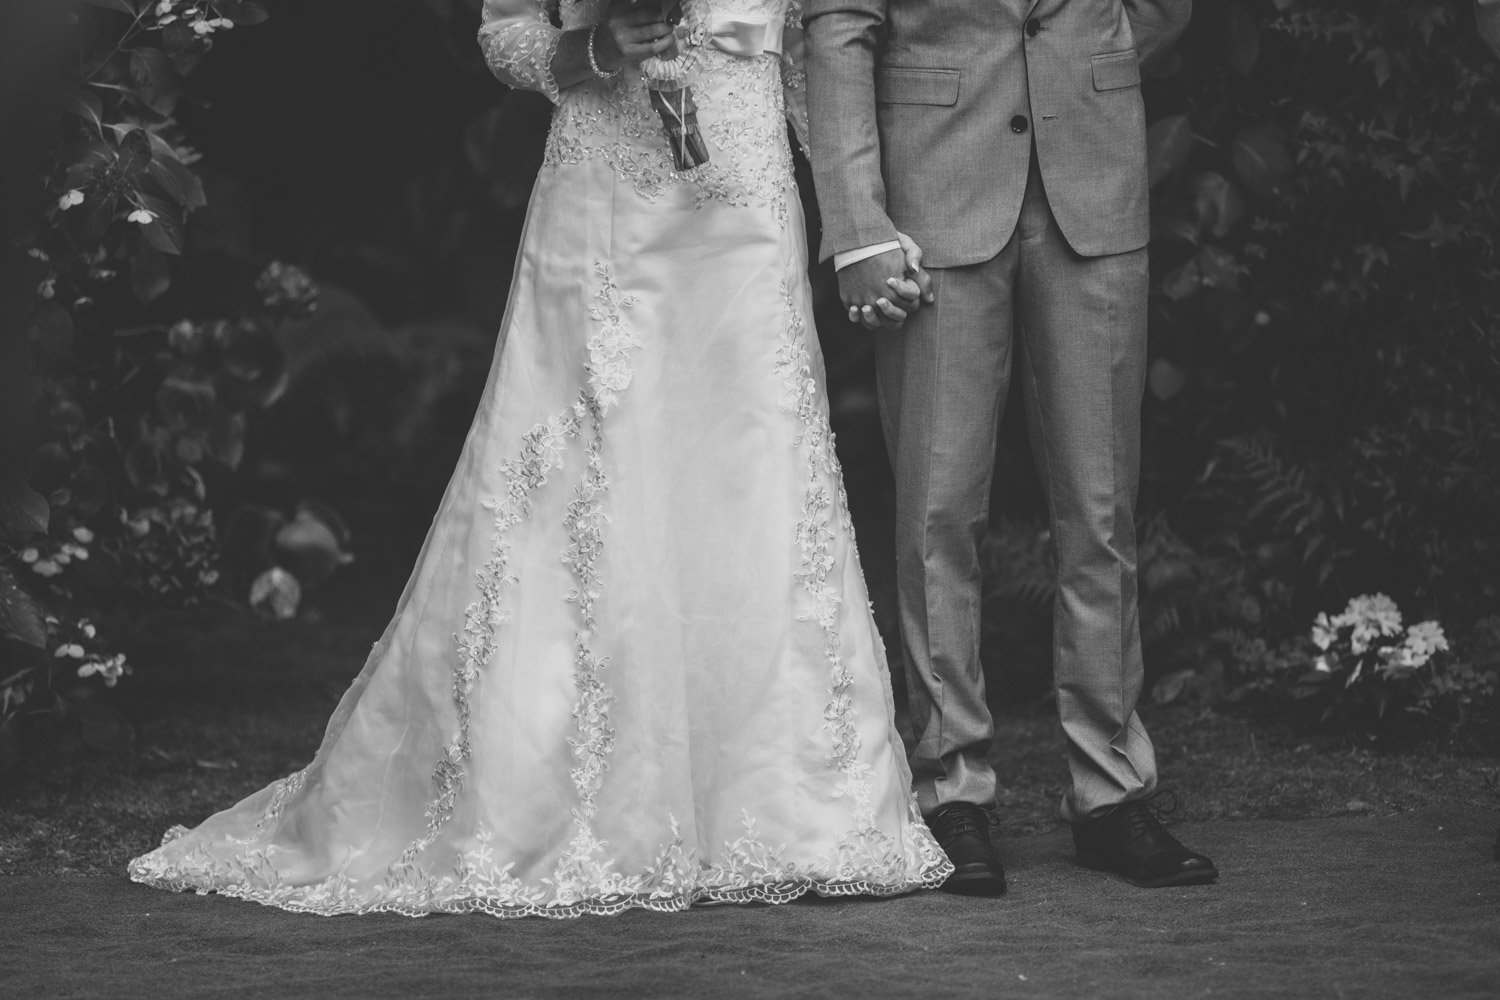 FOR OUR CLIENTS - It is the little moments that make your wedding uniquely yours. A secret smile, a moment of reflection, a brush of the hand or a stolen kiss. My goal is to capture those raw and beautiful moments through candid and natural documentary style storytelling.